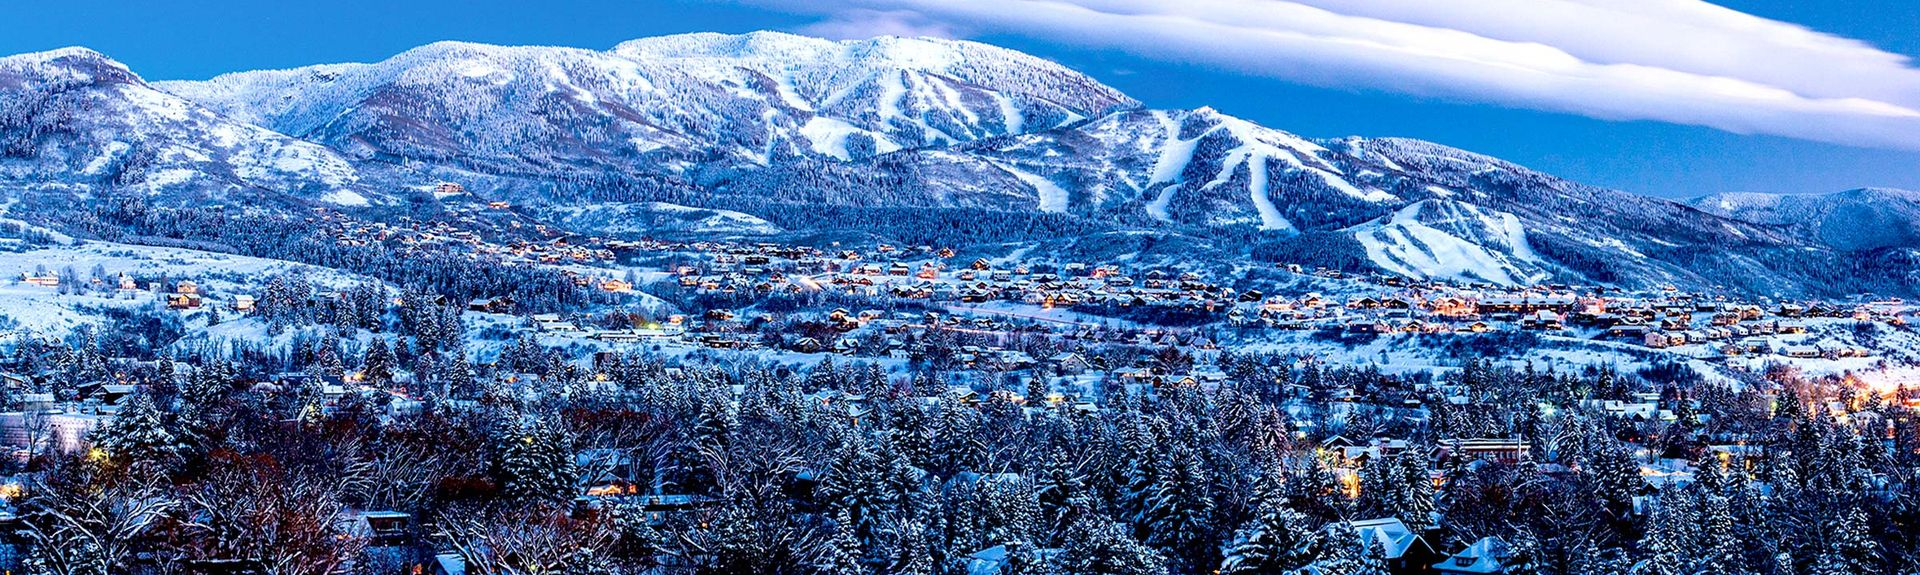 Old Town, Steamboat Springs, Colorado, United States of America